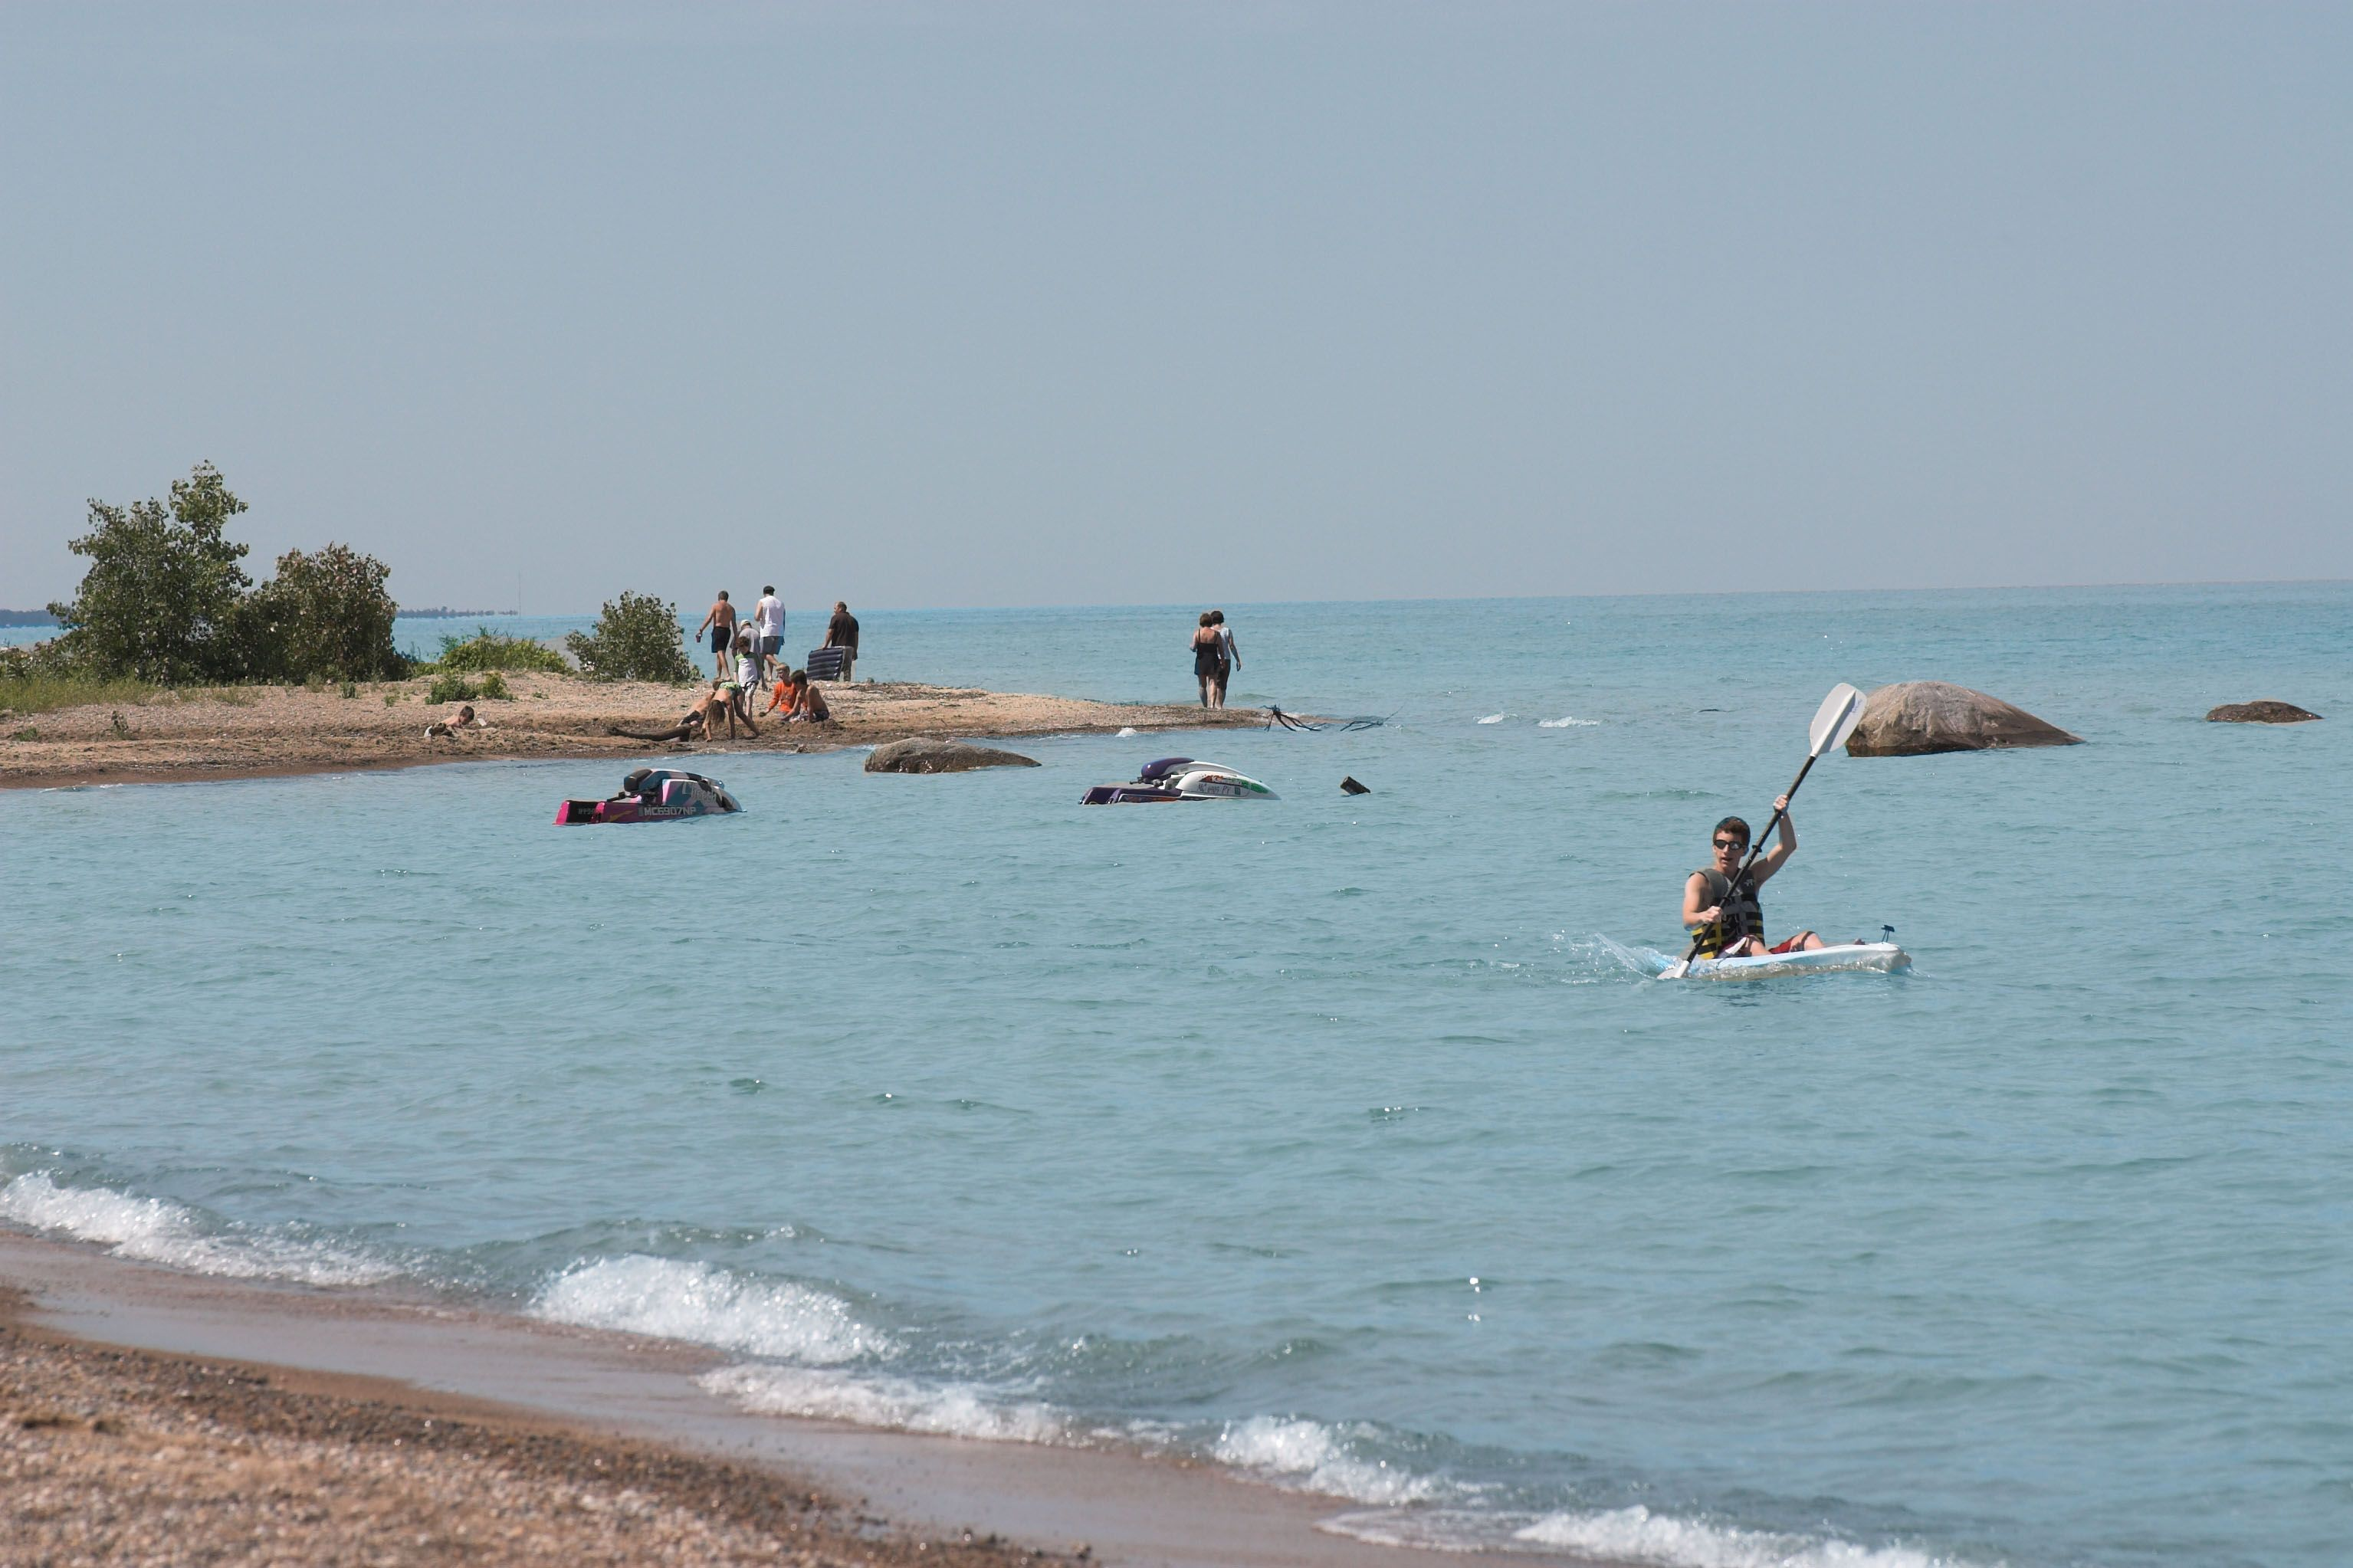 #LakeHuron #Beach #VacationRental in #PortSanilac #Michigan!  Book Now @ http://www.homeaway.com/vacation-rental/p3543649